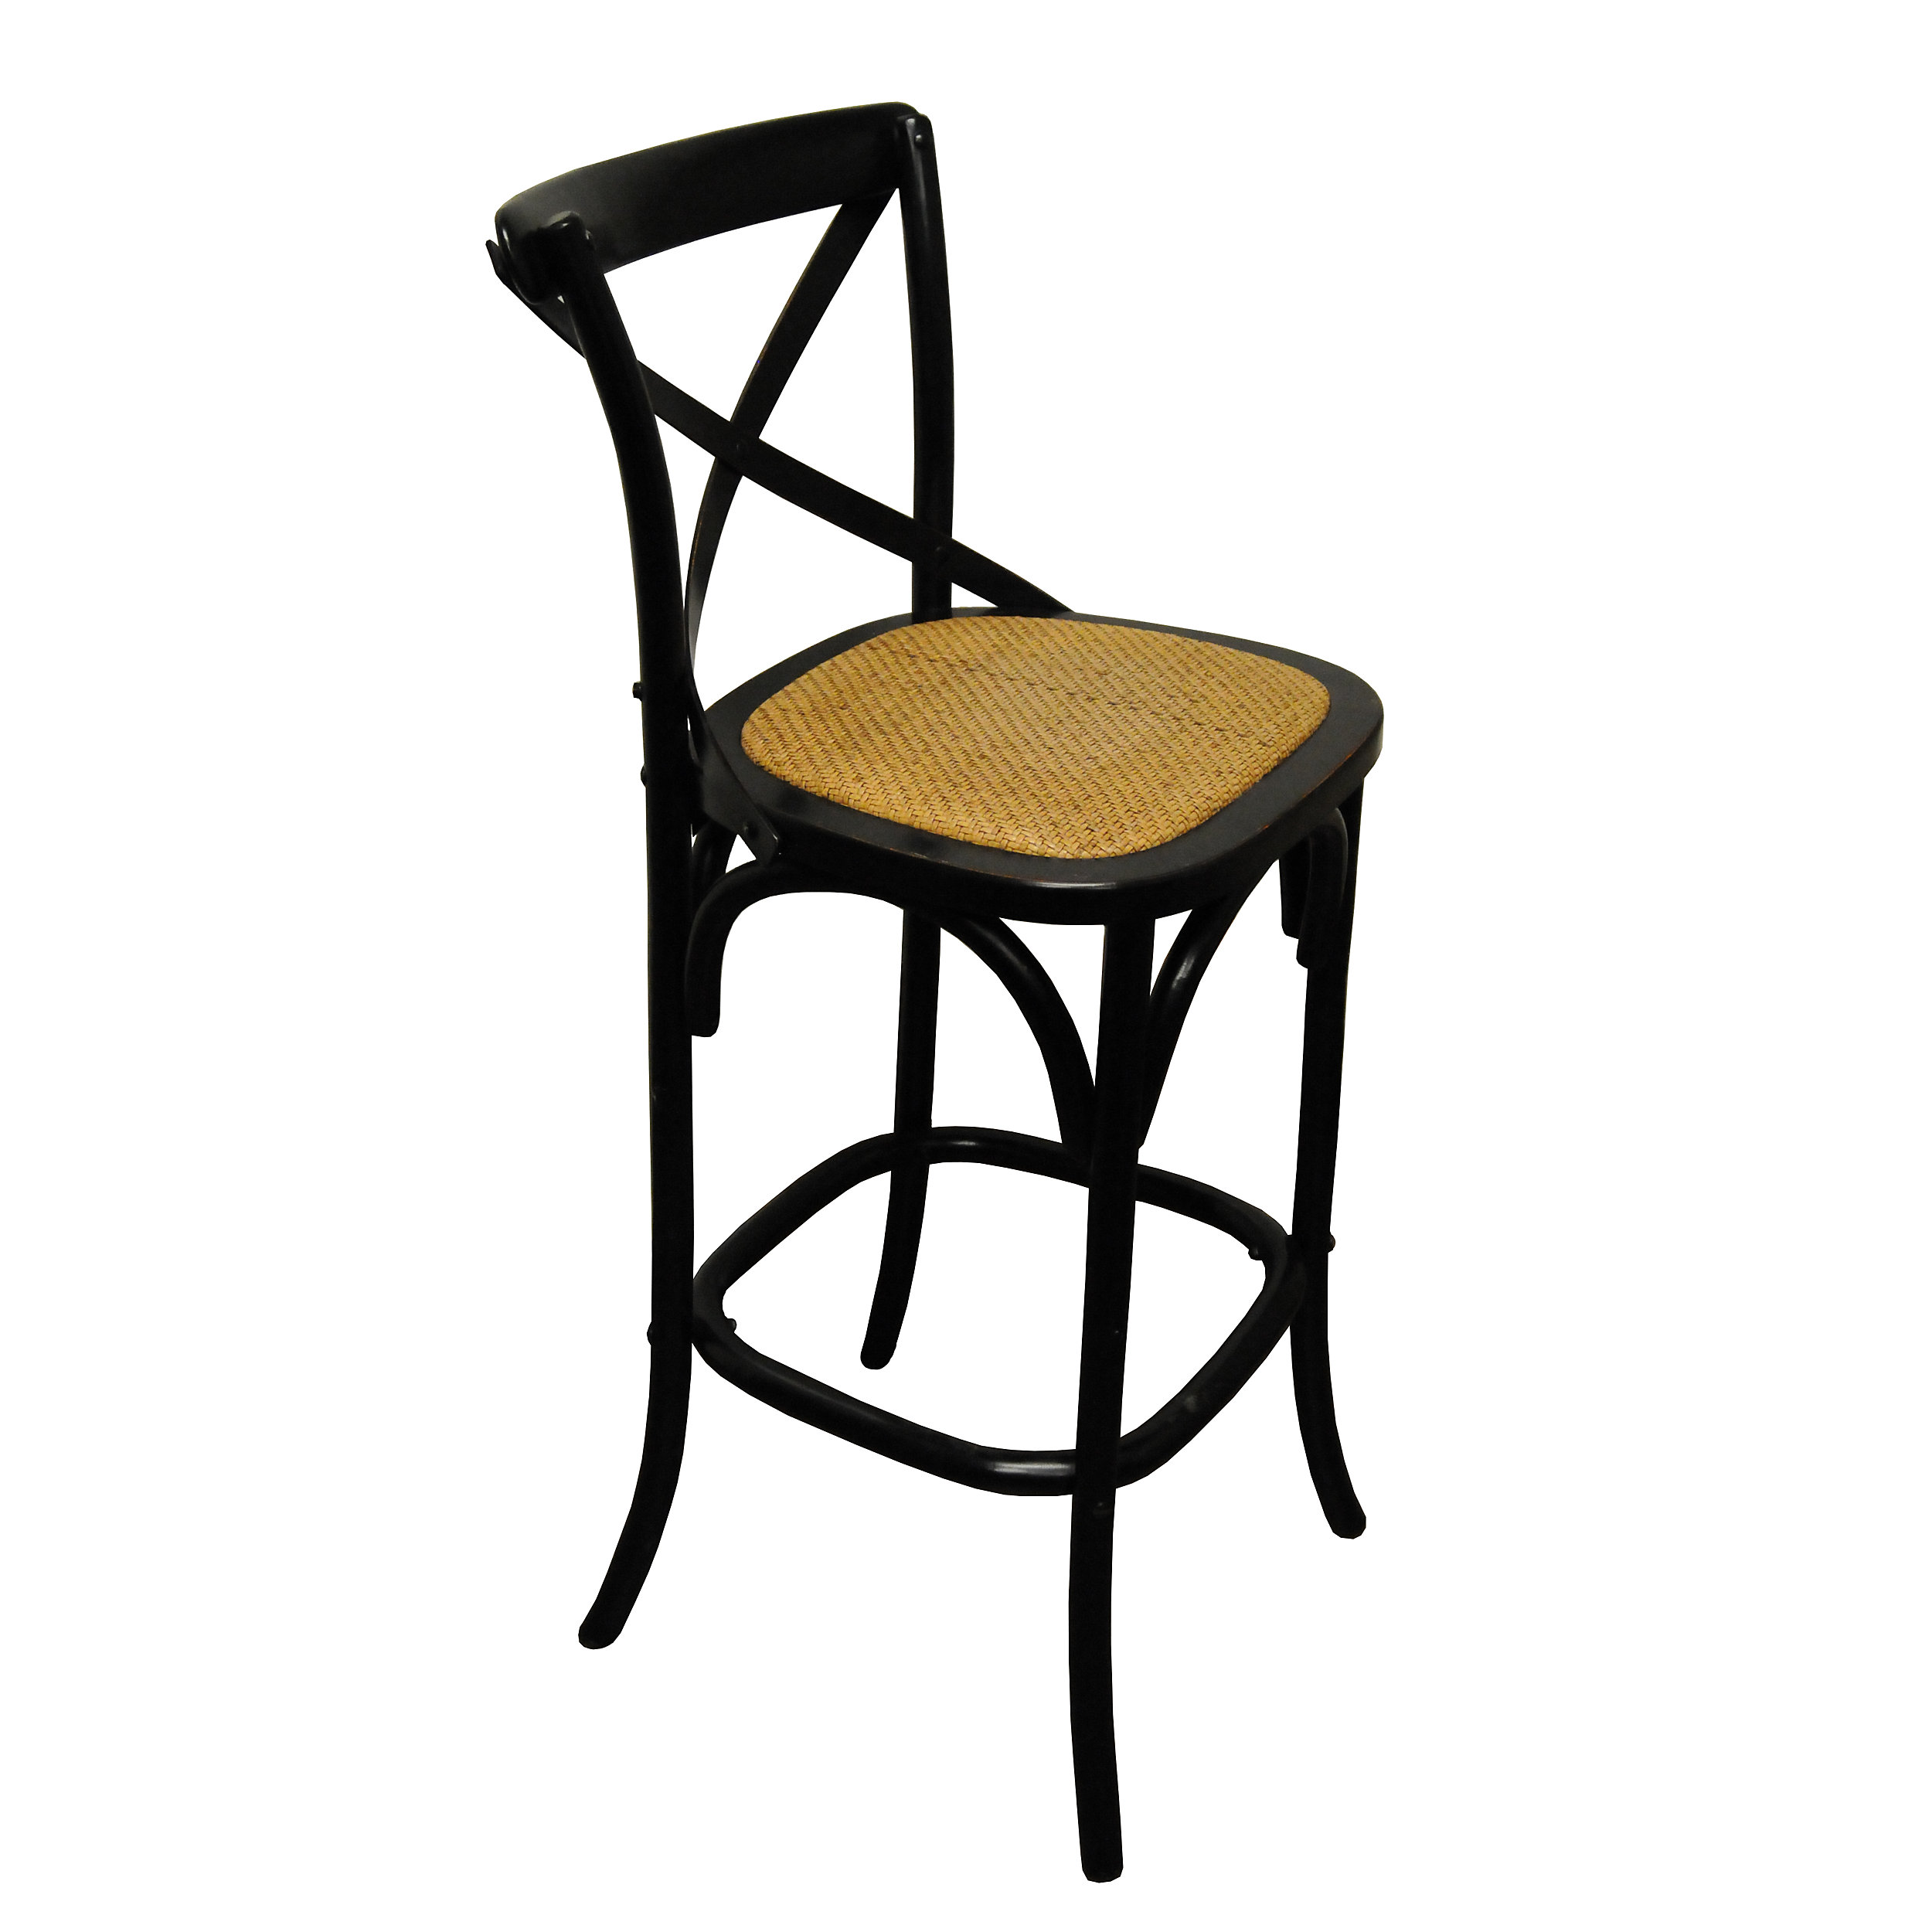 Prime Black Bar Stools With Back Black Wooden Bar Stools Creativecarmelina Interior Chair Design Creativecarmelinacom